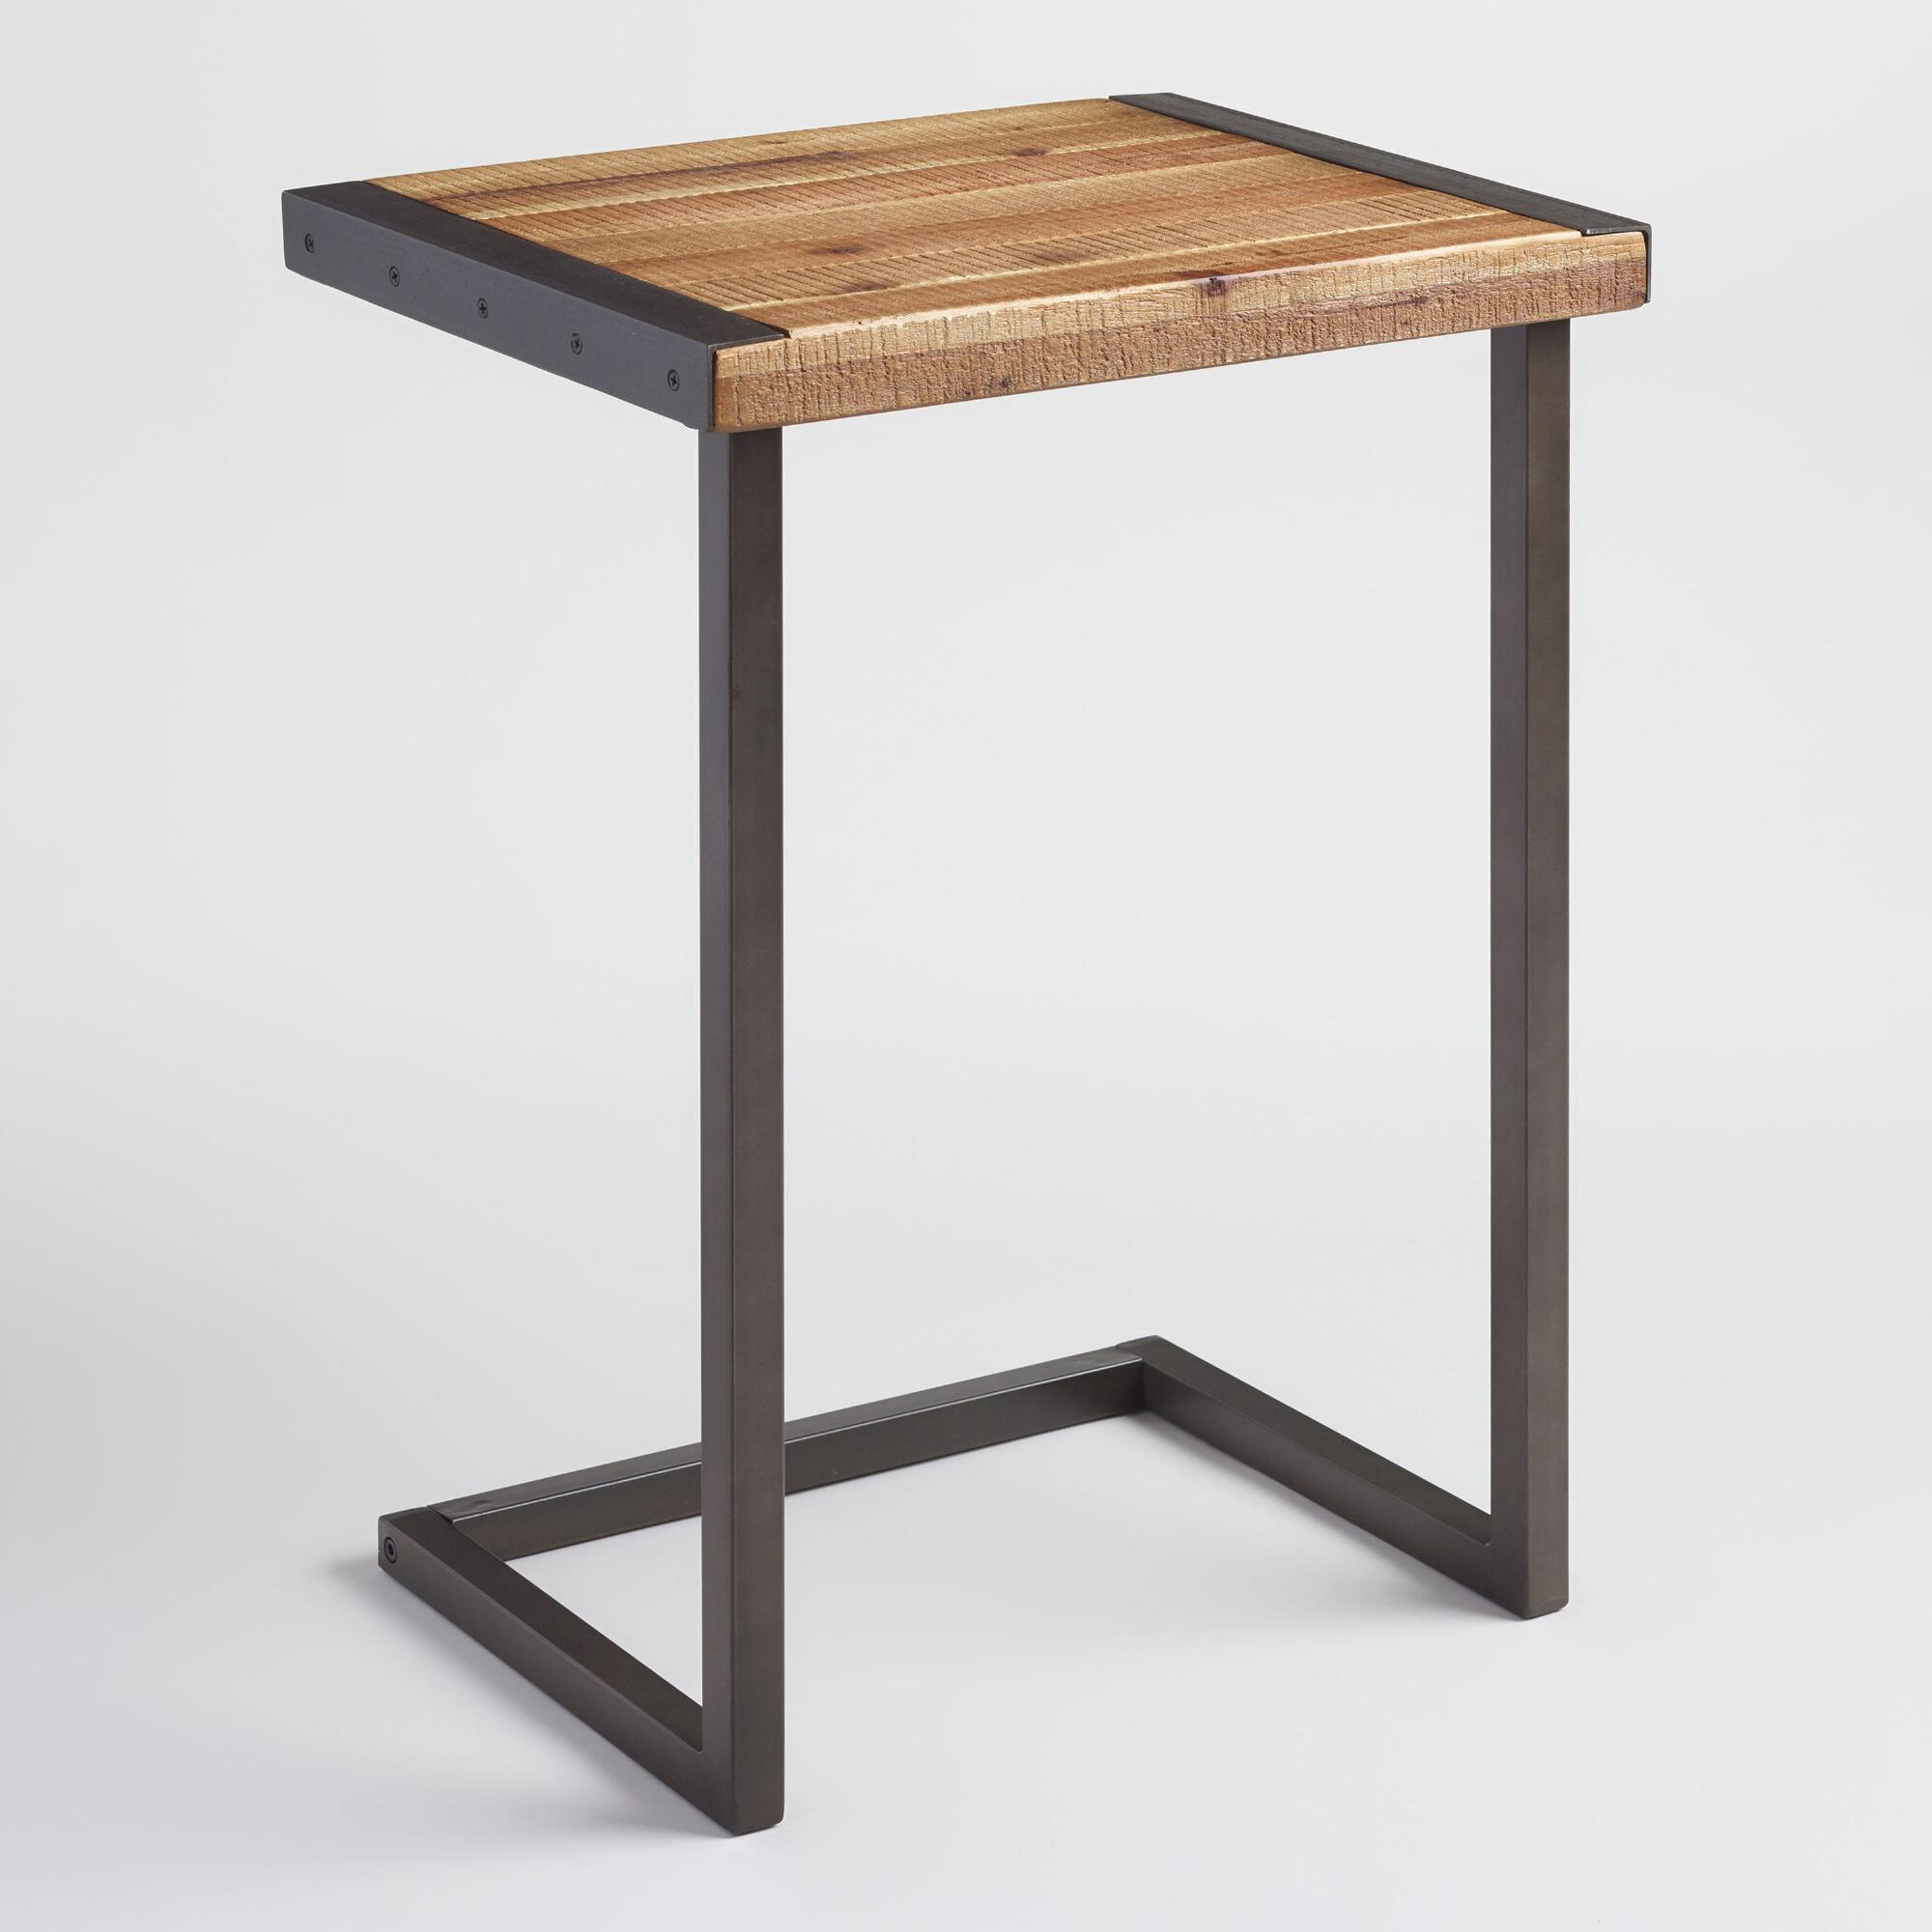 industrial furniture rustic chic world market iipsrv fcgi metal garden accent table edge laptop desk blue tablecloth high end tables barn door room divider best trestle ikea